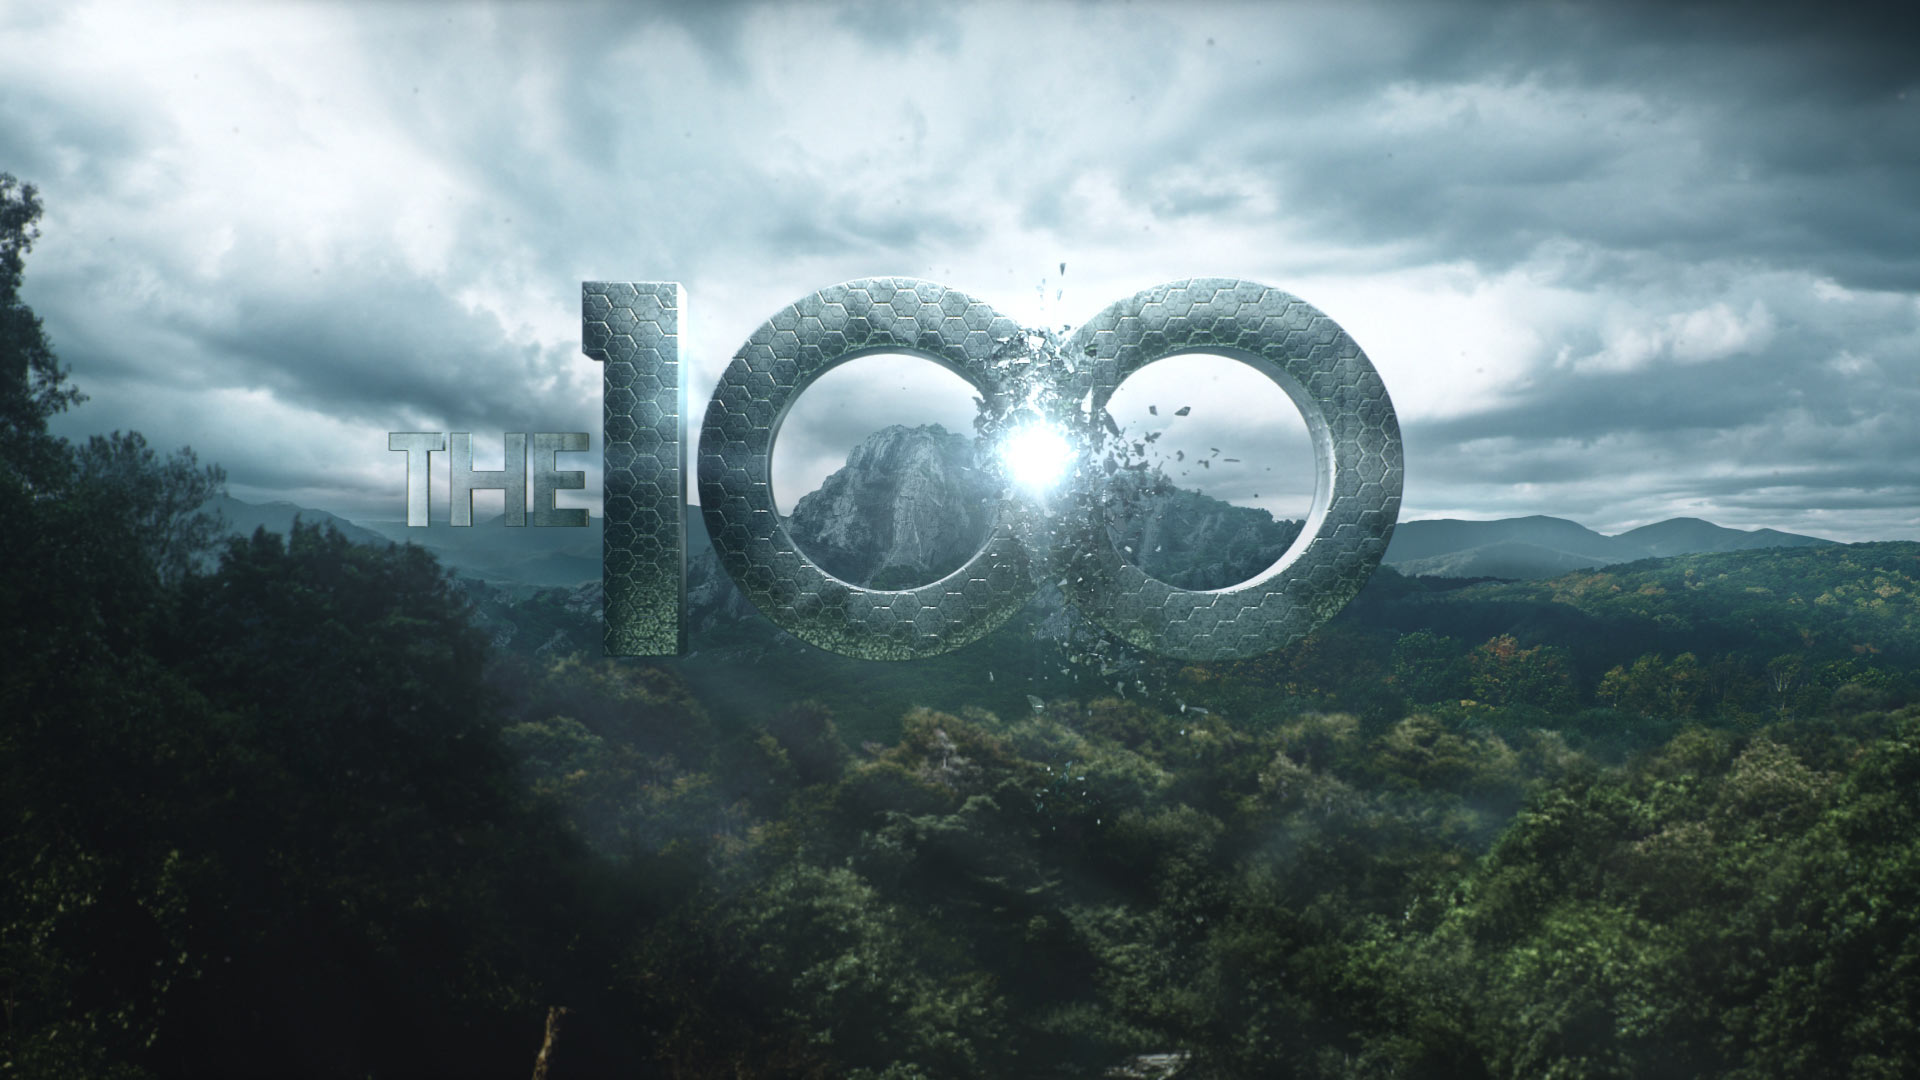 La historia de The 100 continúa en Rebellion